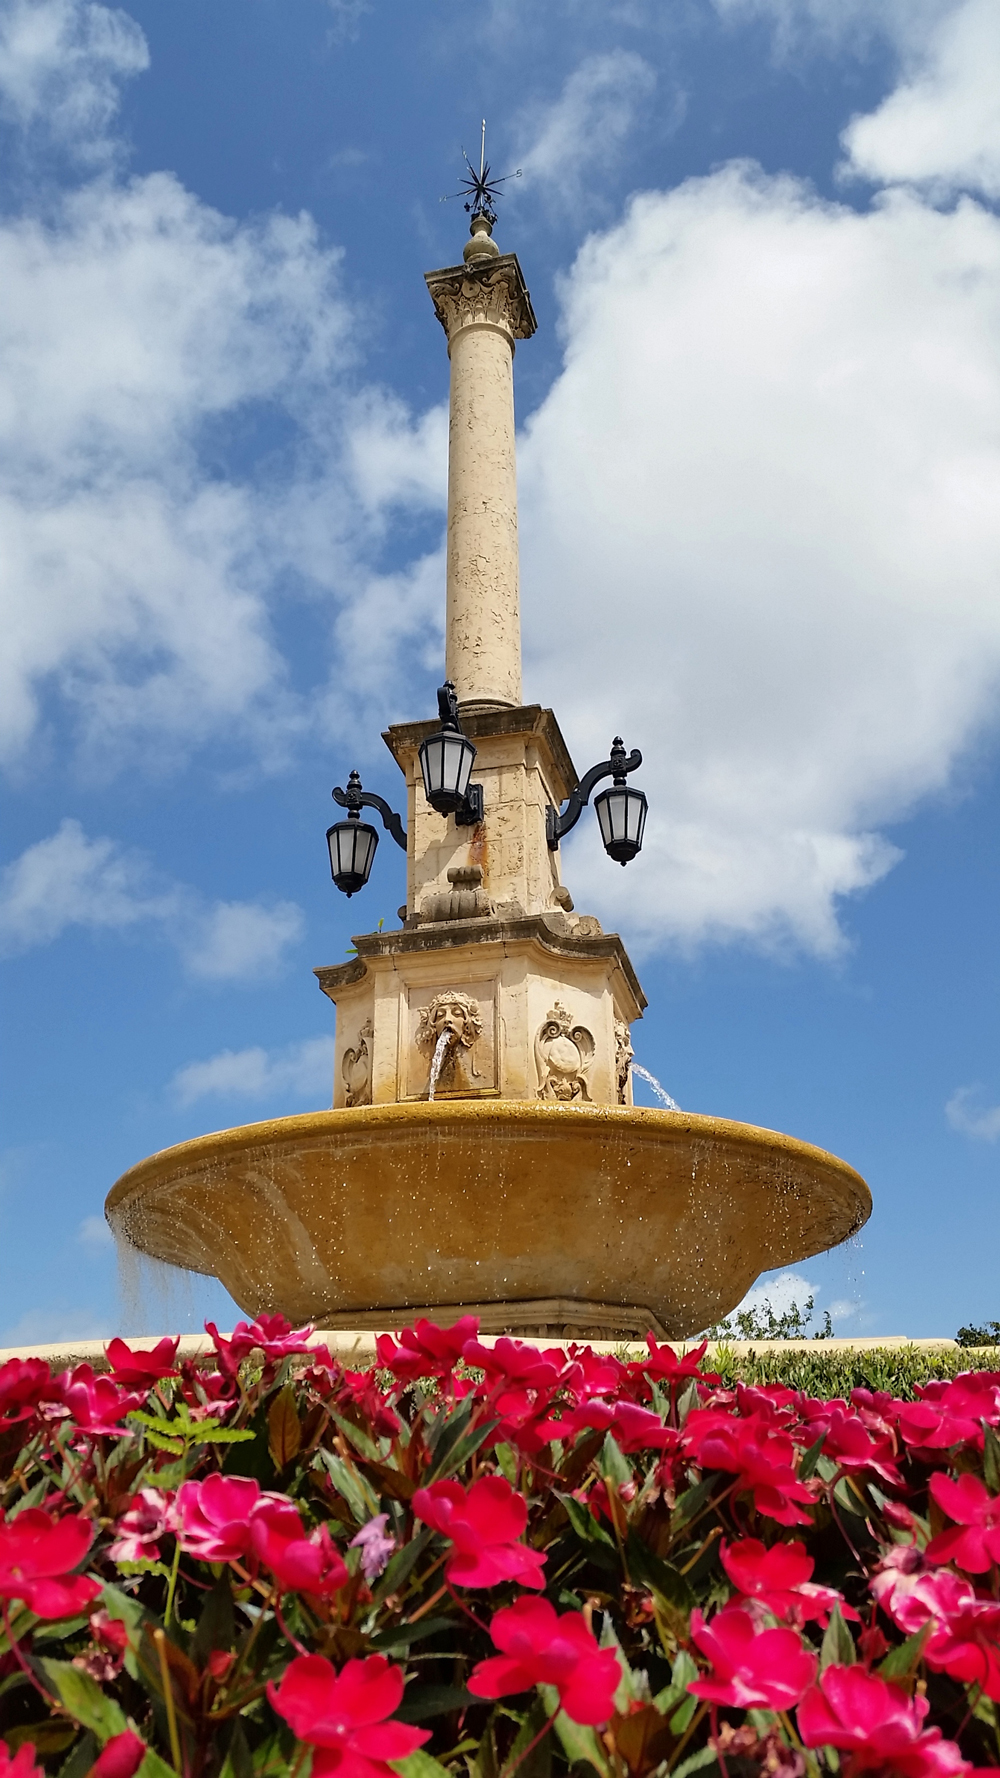 Coral Gables De Soto Fountain. Adorned with colorful flowers and small shrubs, the De Soto Fountain really is a simple yet elegant backdrop to your photos.